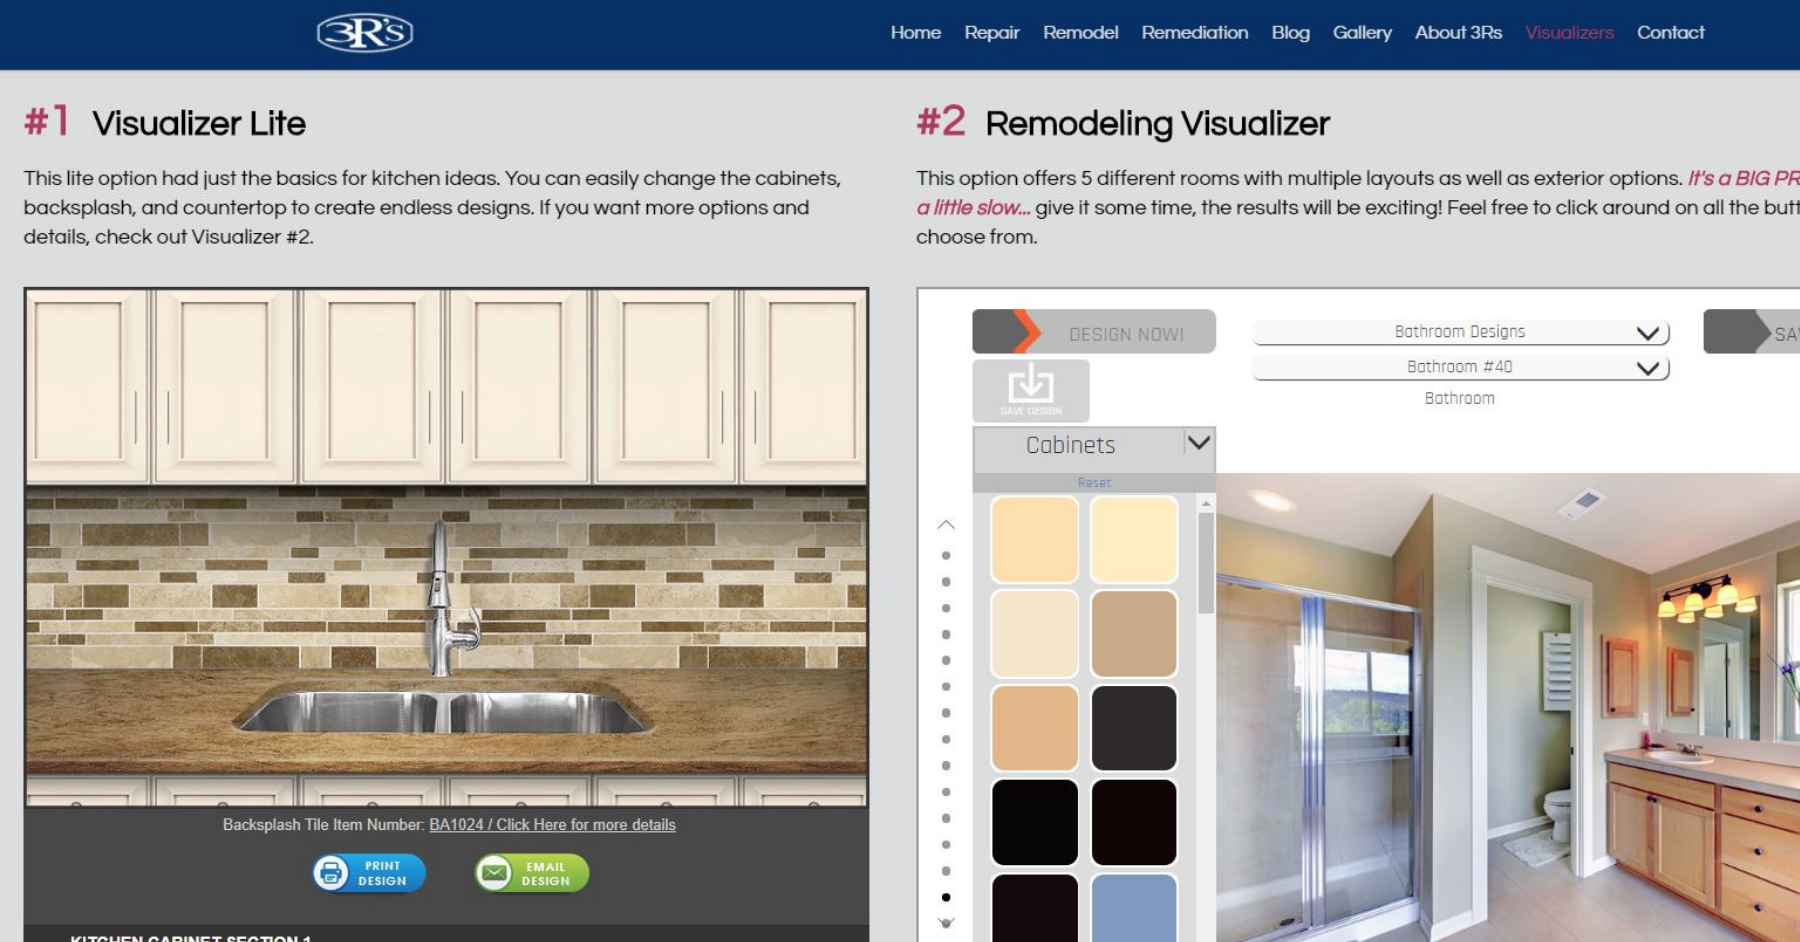 3Rs Construction Remodeling Visualizer